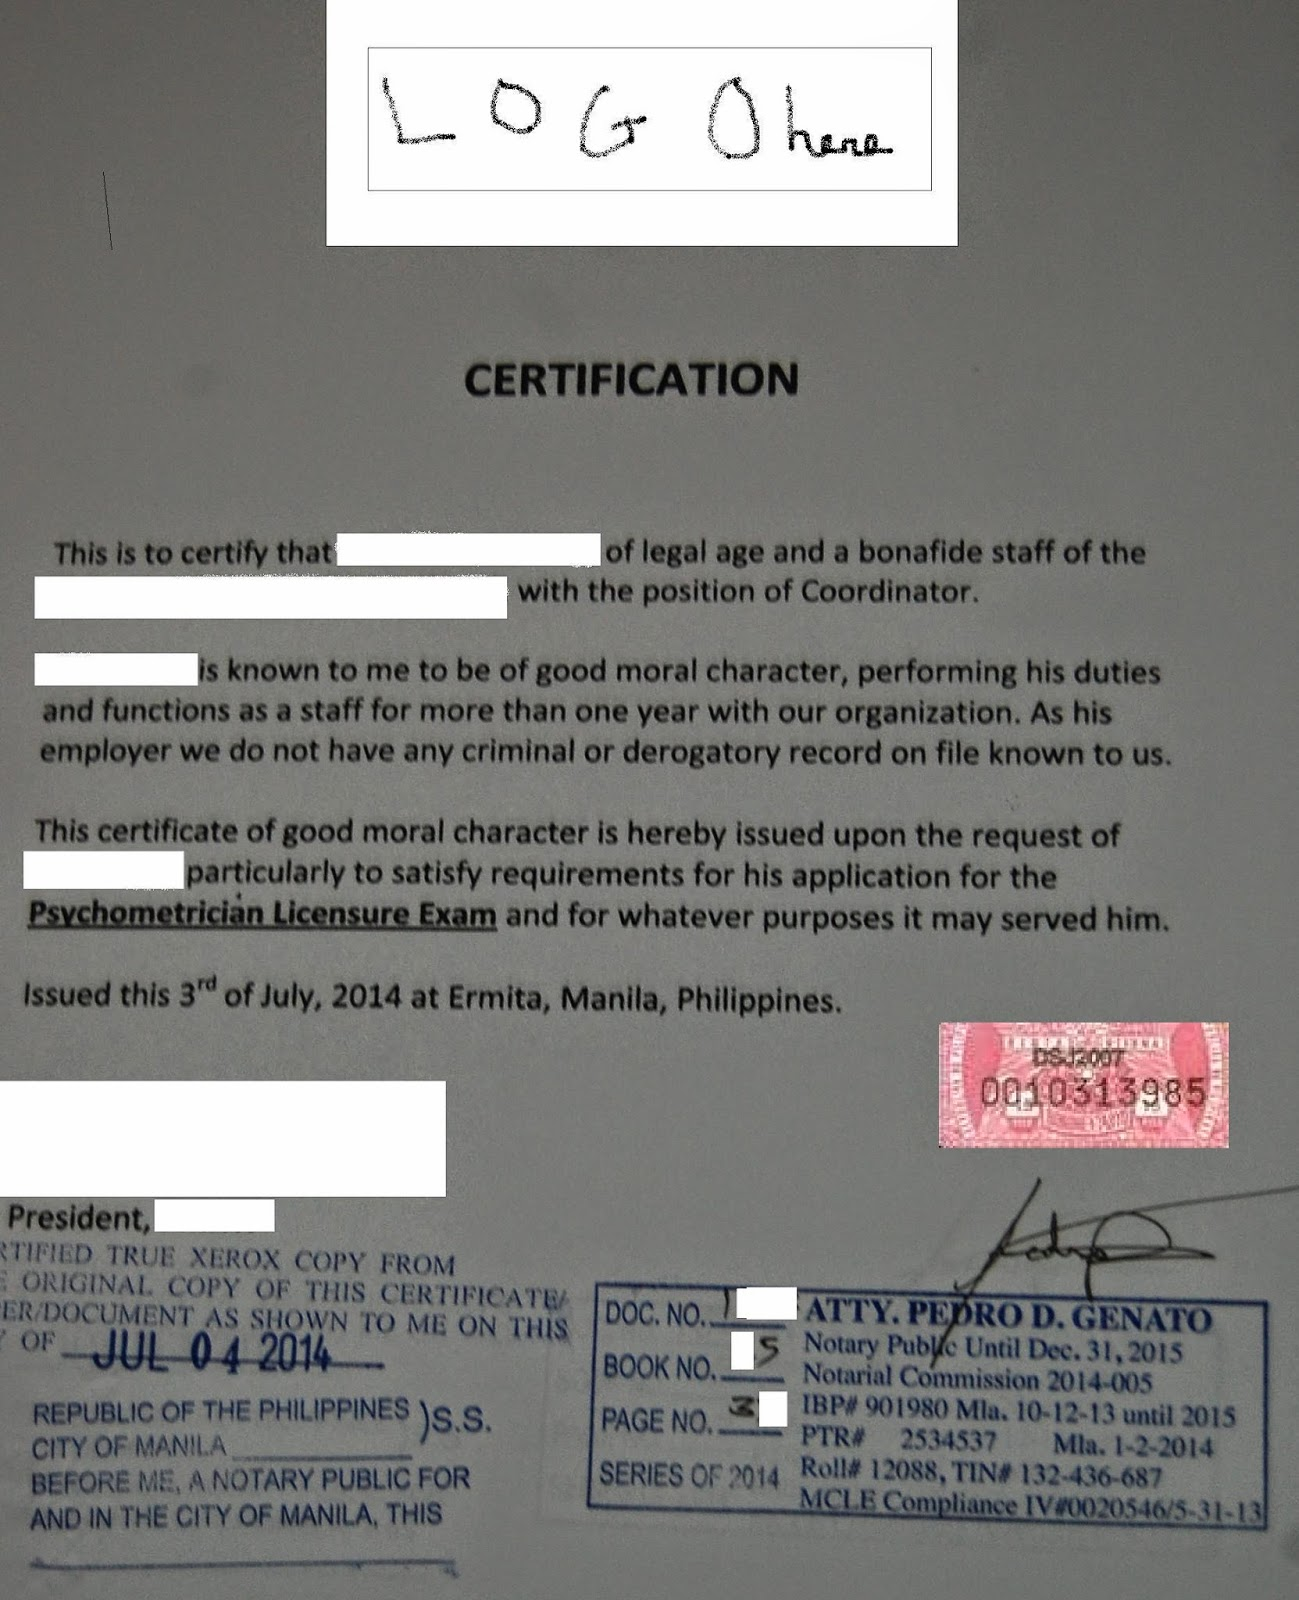 certificate of good moral character template - philippine psychometricians licensure exam reviewer